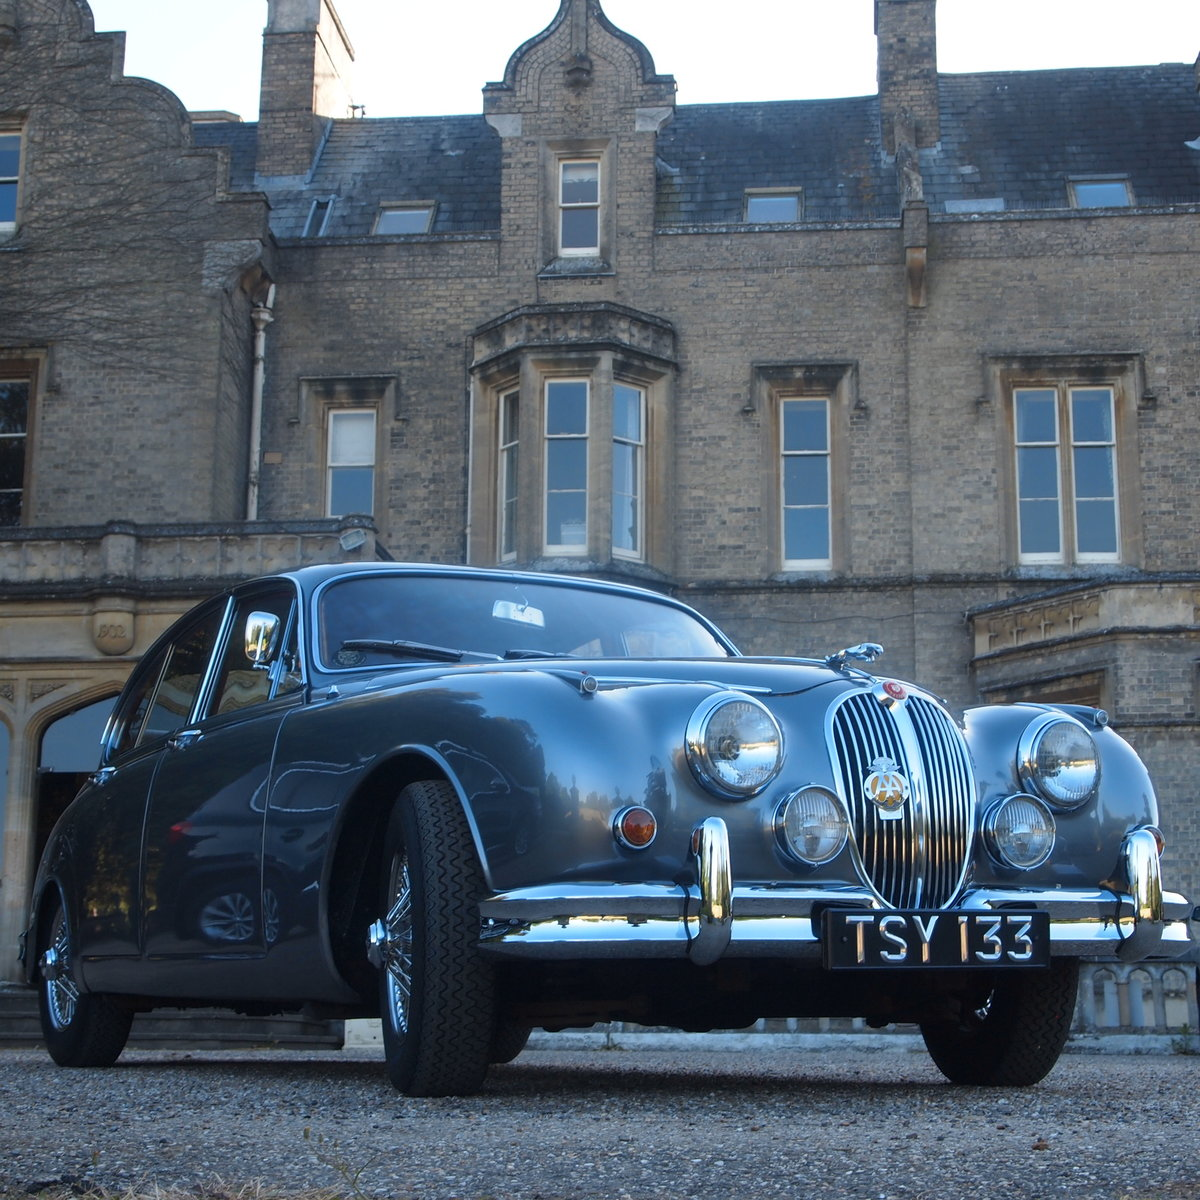 1961 Jaguar mk 2 Manual 3.4 Four Speed With Overdrive. For Sale (picture 1 of 6)